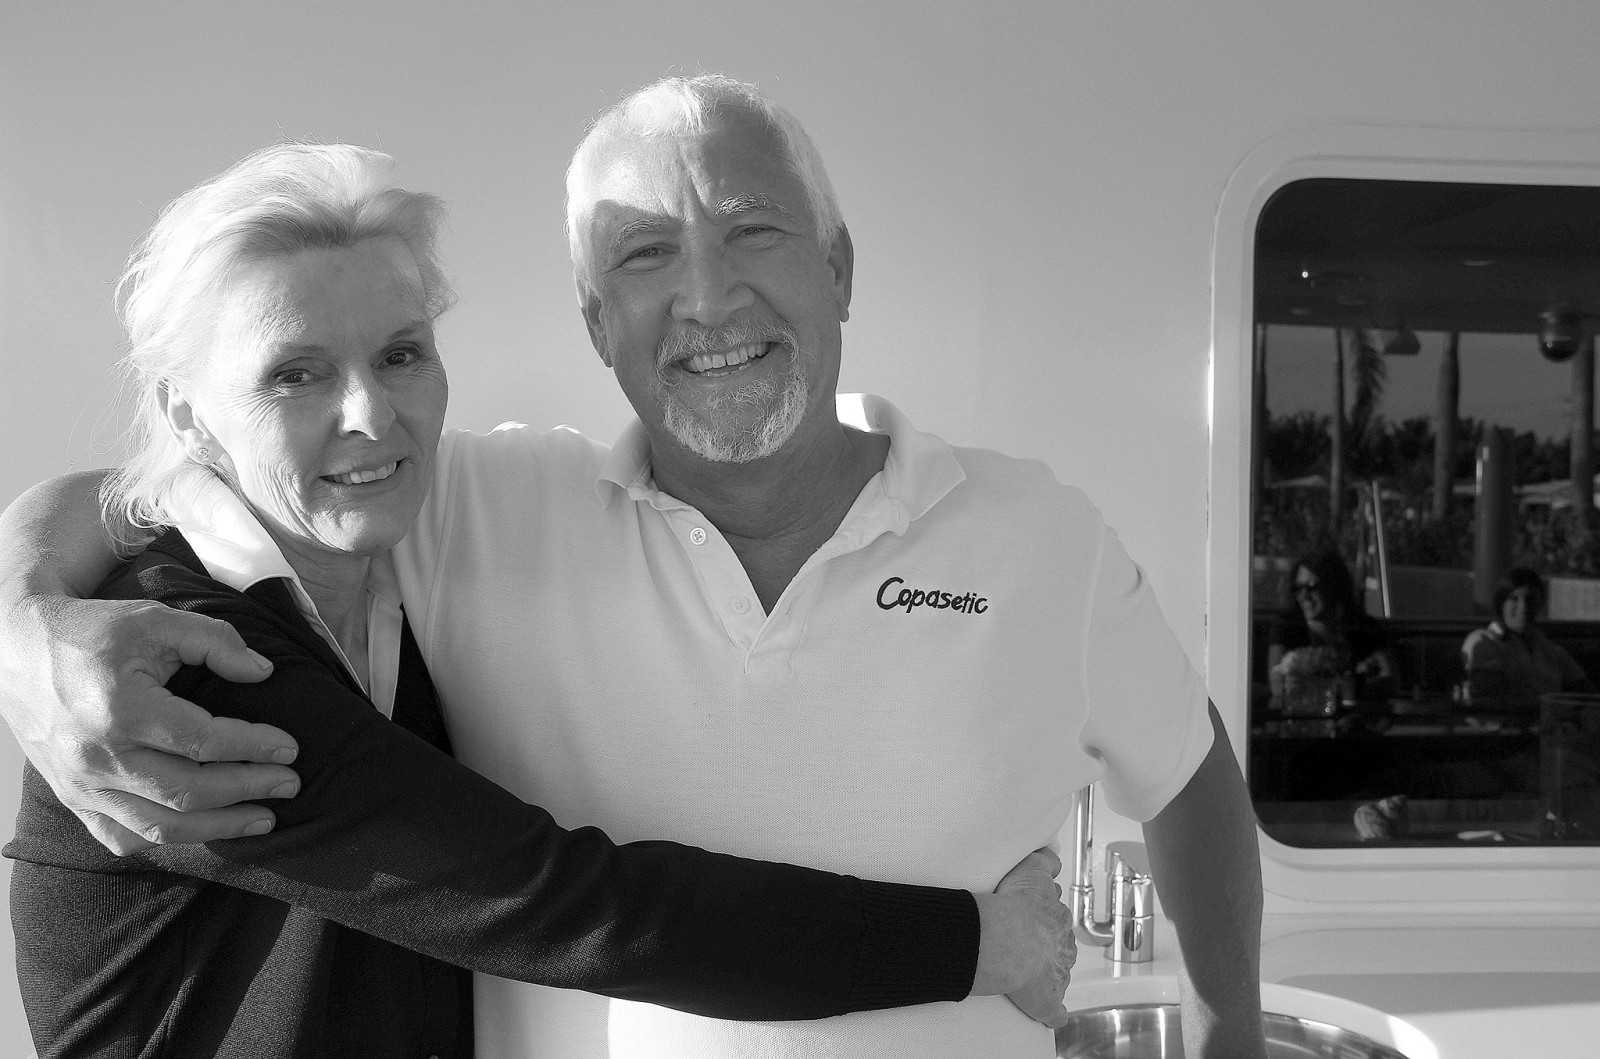 """M/Y Copasetic Capt. Ian Van der Watt and his wife Cici have been traveling the world and working together on yachts for 26 years. The secret to their success is """"Listening to each other."""""""